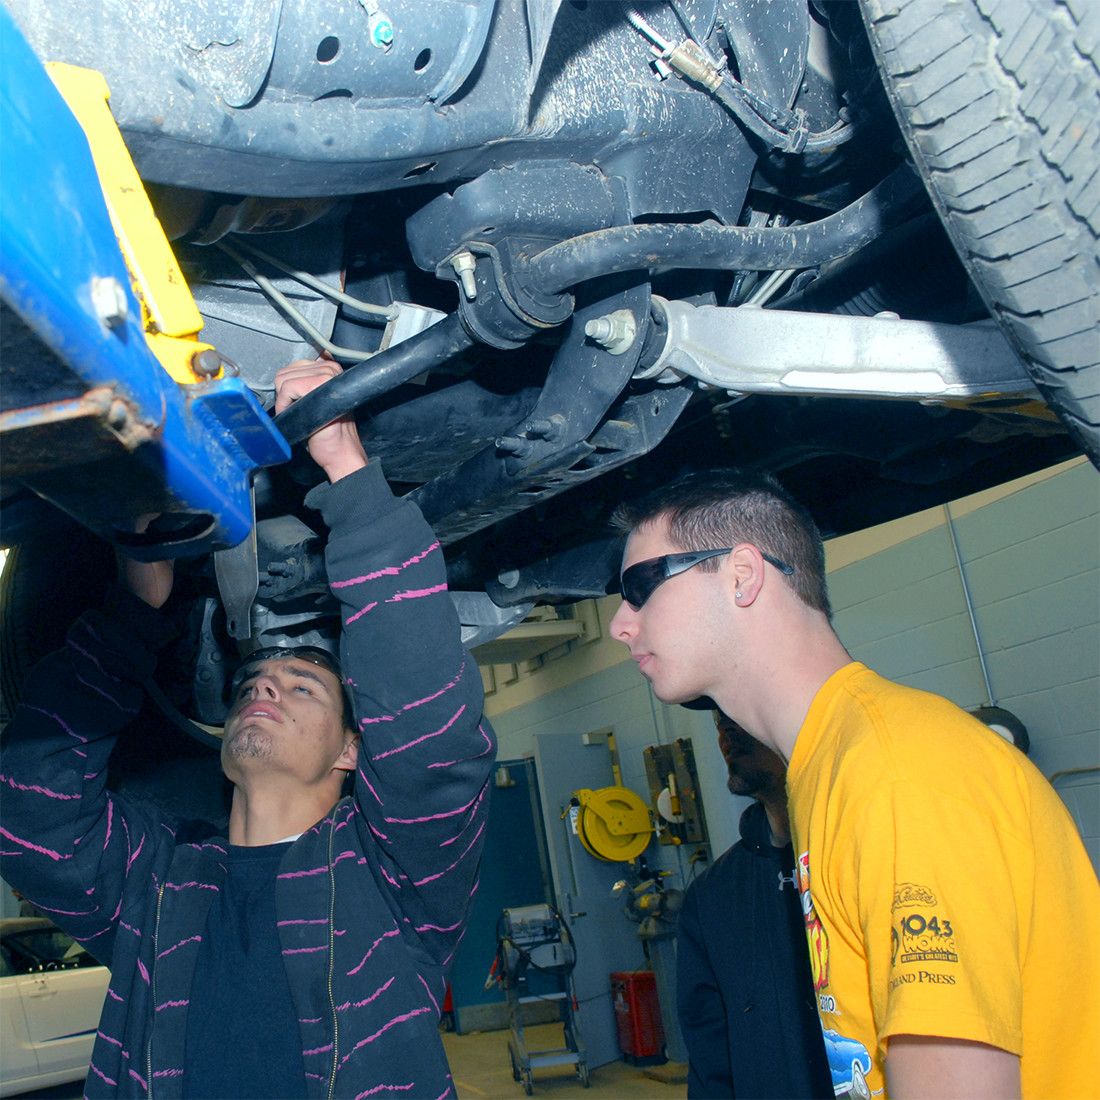 Two students standing underneath car lifted by a jack, the one on the left peering at the underside's parts and reaching up to work on it